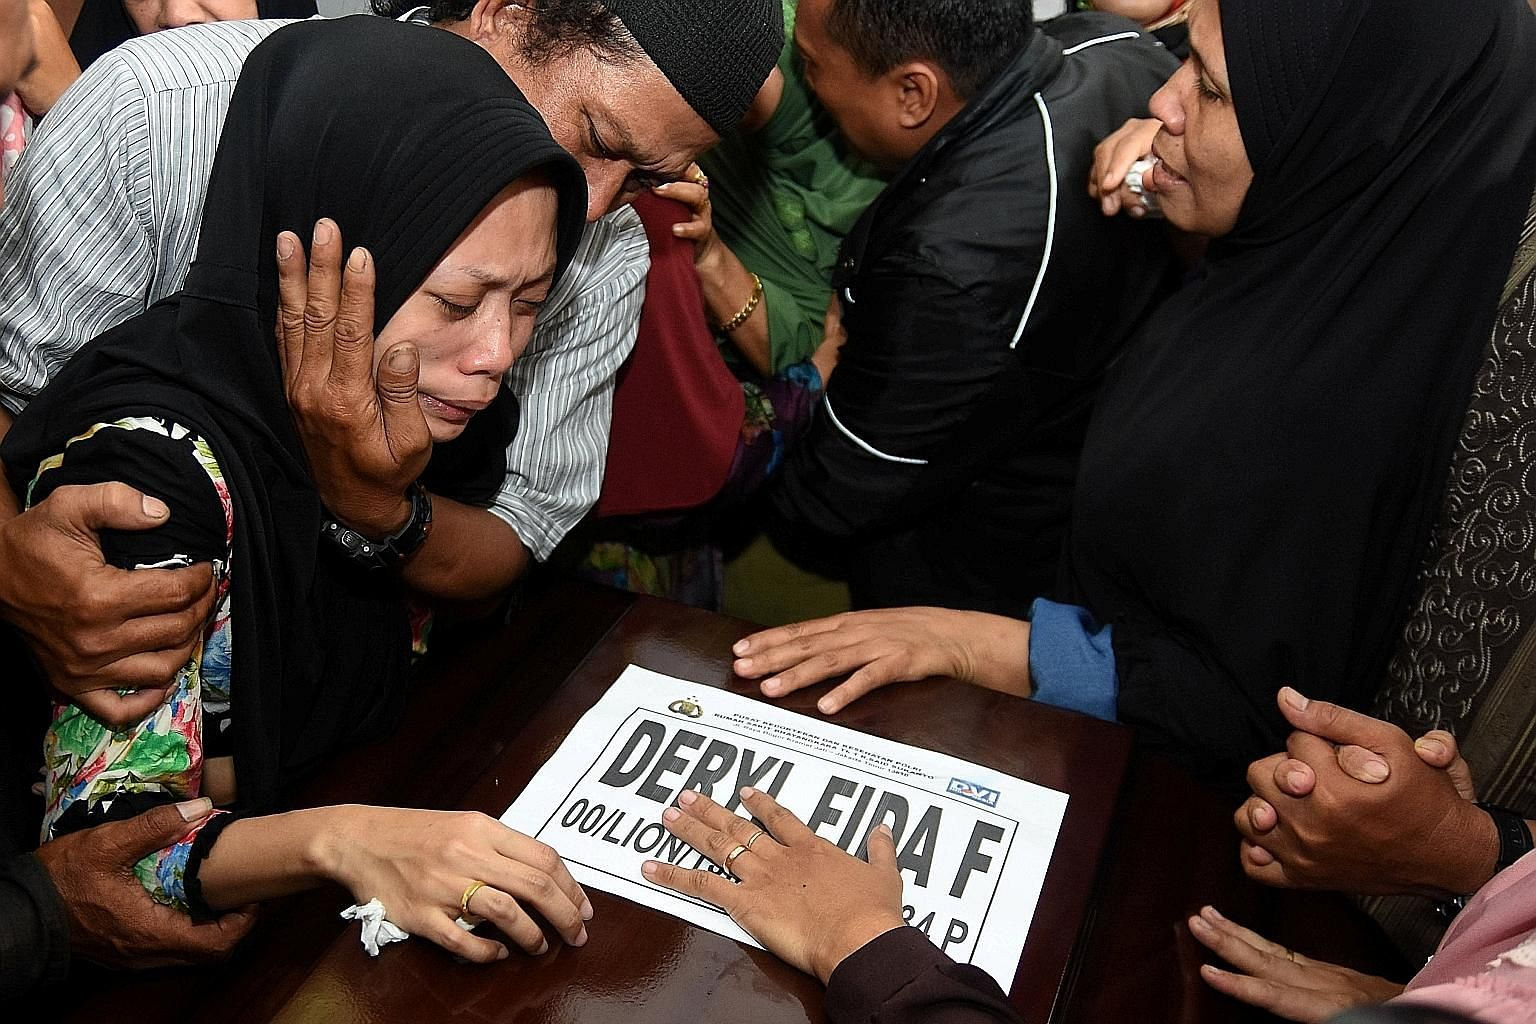 Ms Lutfinani Eka Putri, the wife of a Lion Air Flight JT610 passenger, reacting to the arrival of her husband's coffin in Surabaya on Tuesday.